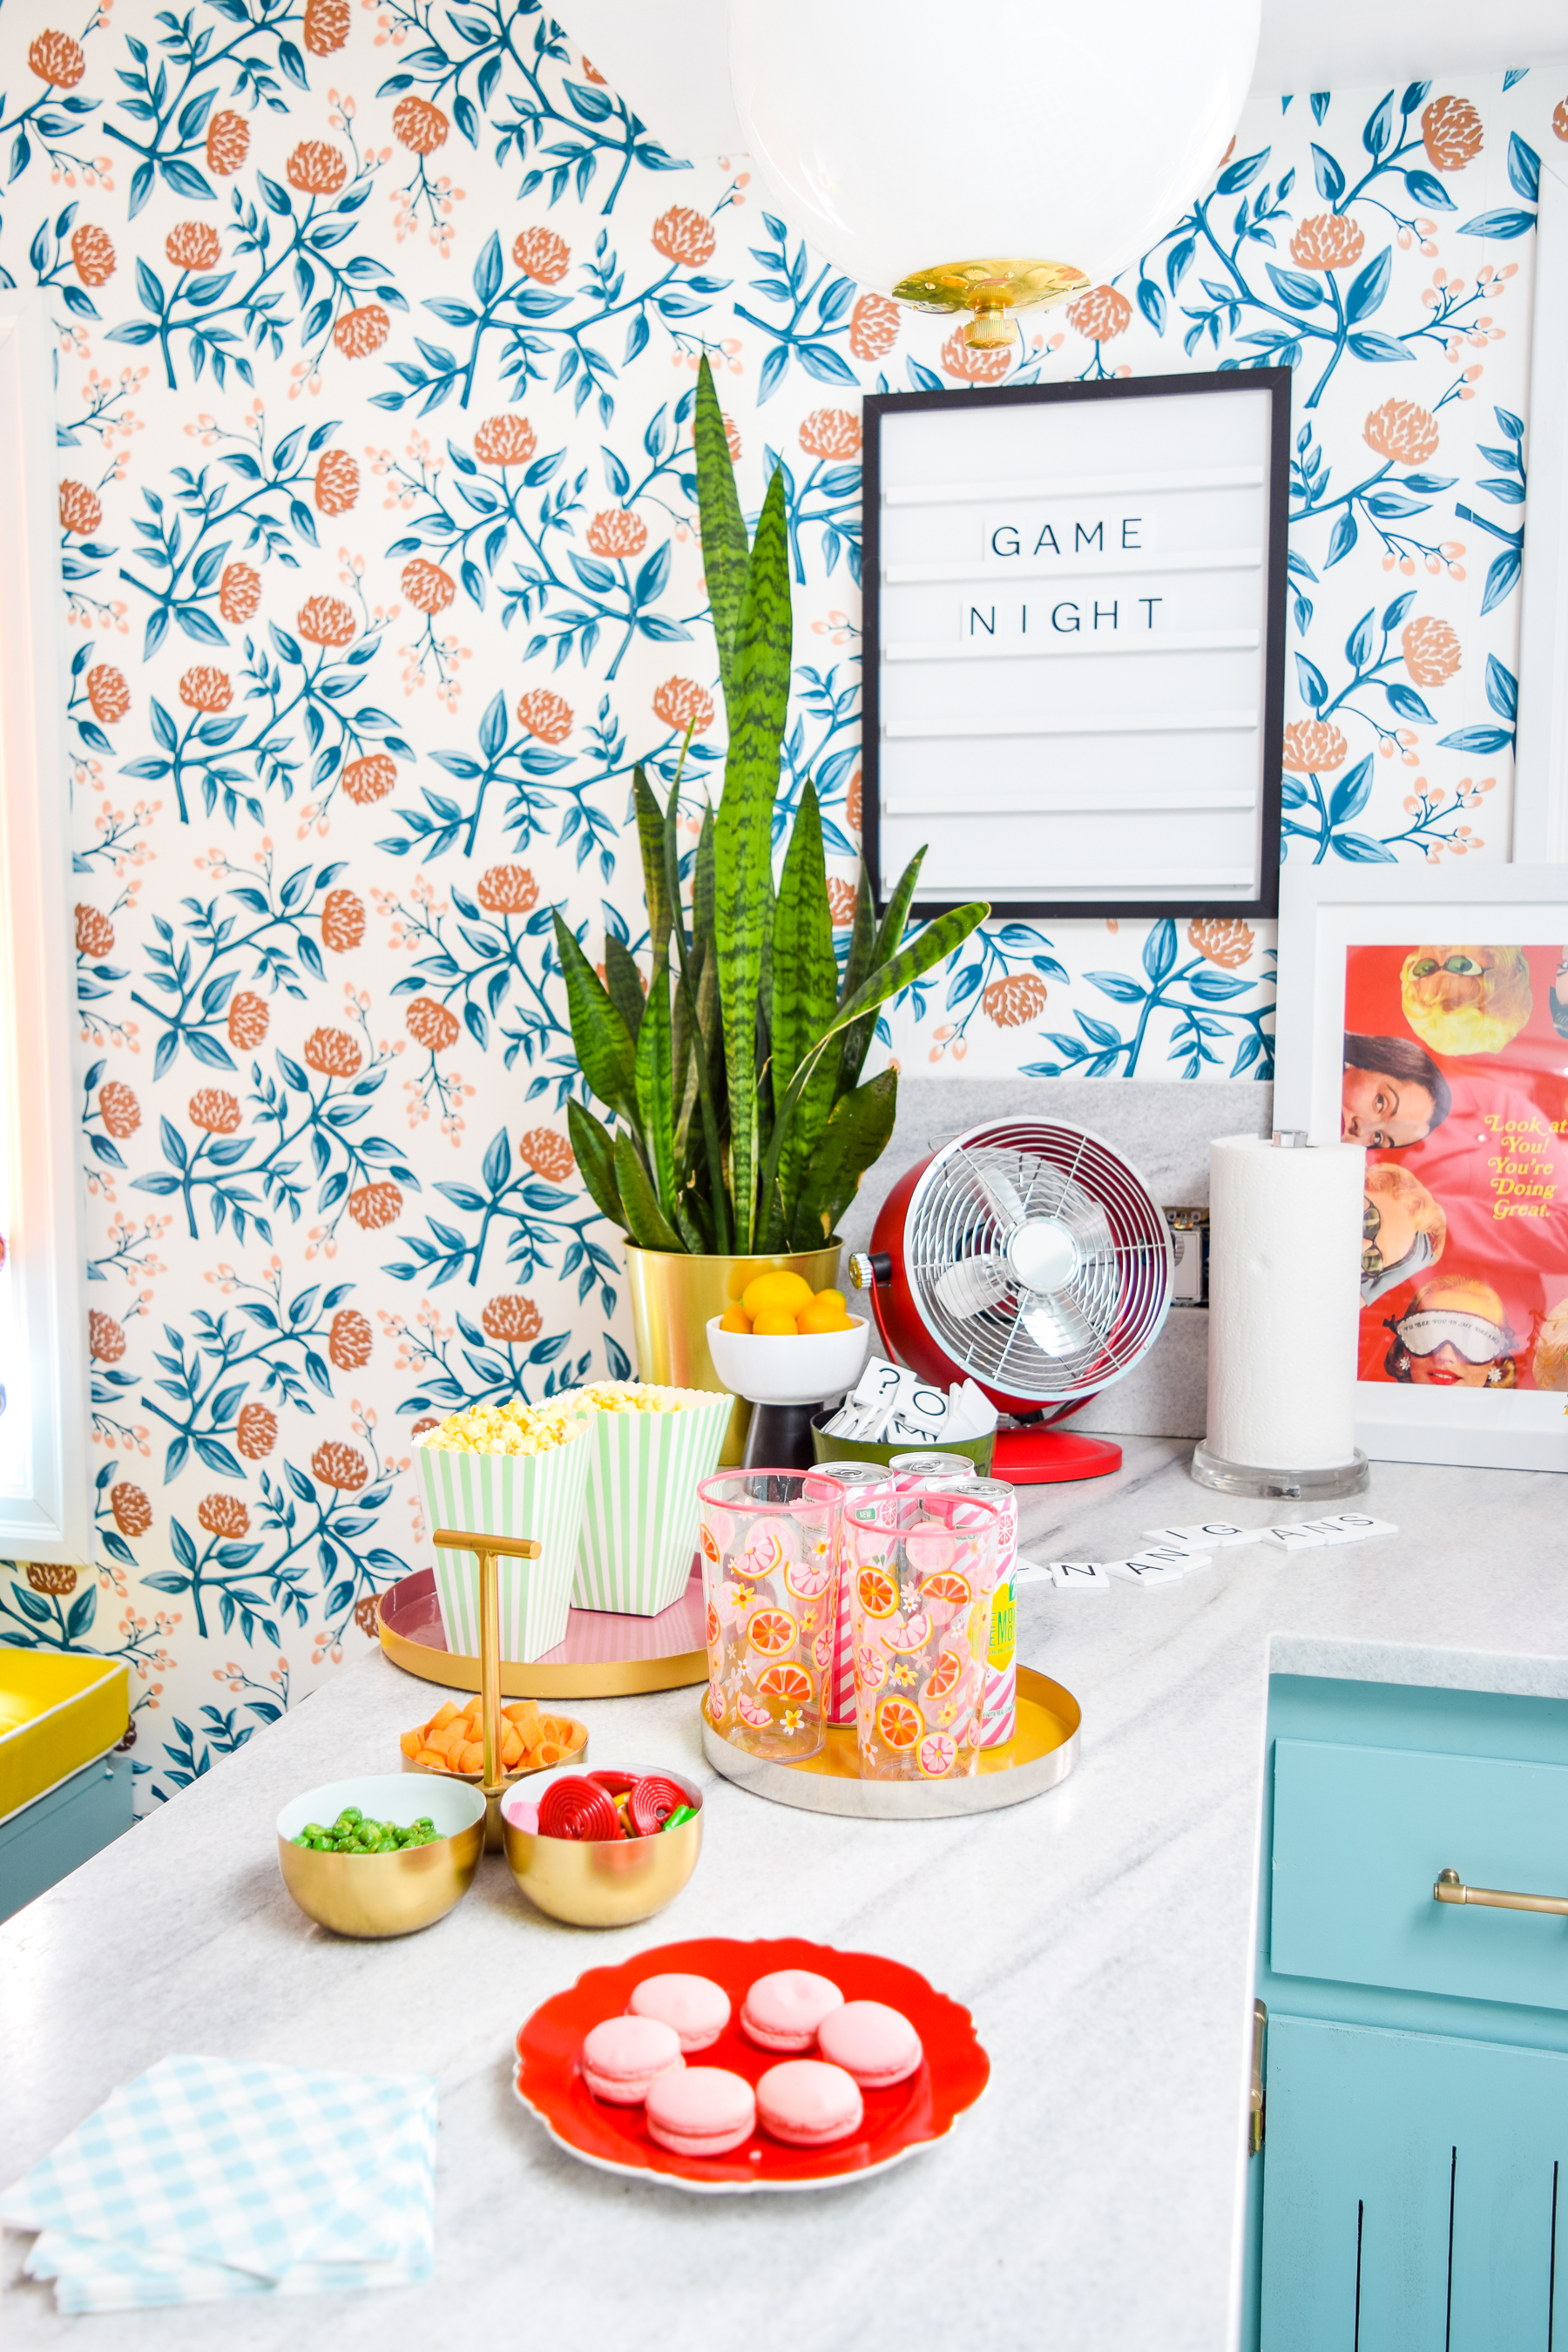 Summer is here! Look past your traditioanl BBQ and pool party, for game night ideas that you can put together in a pinch, with a trip to Homesense.